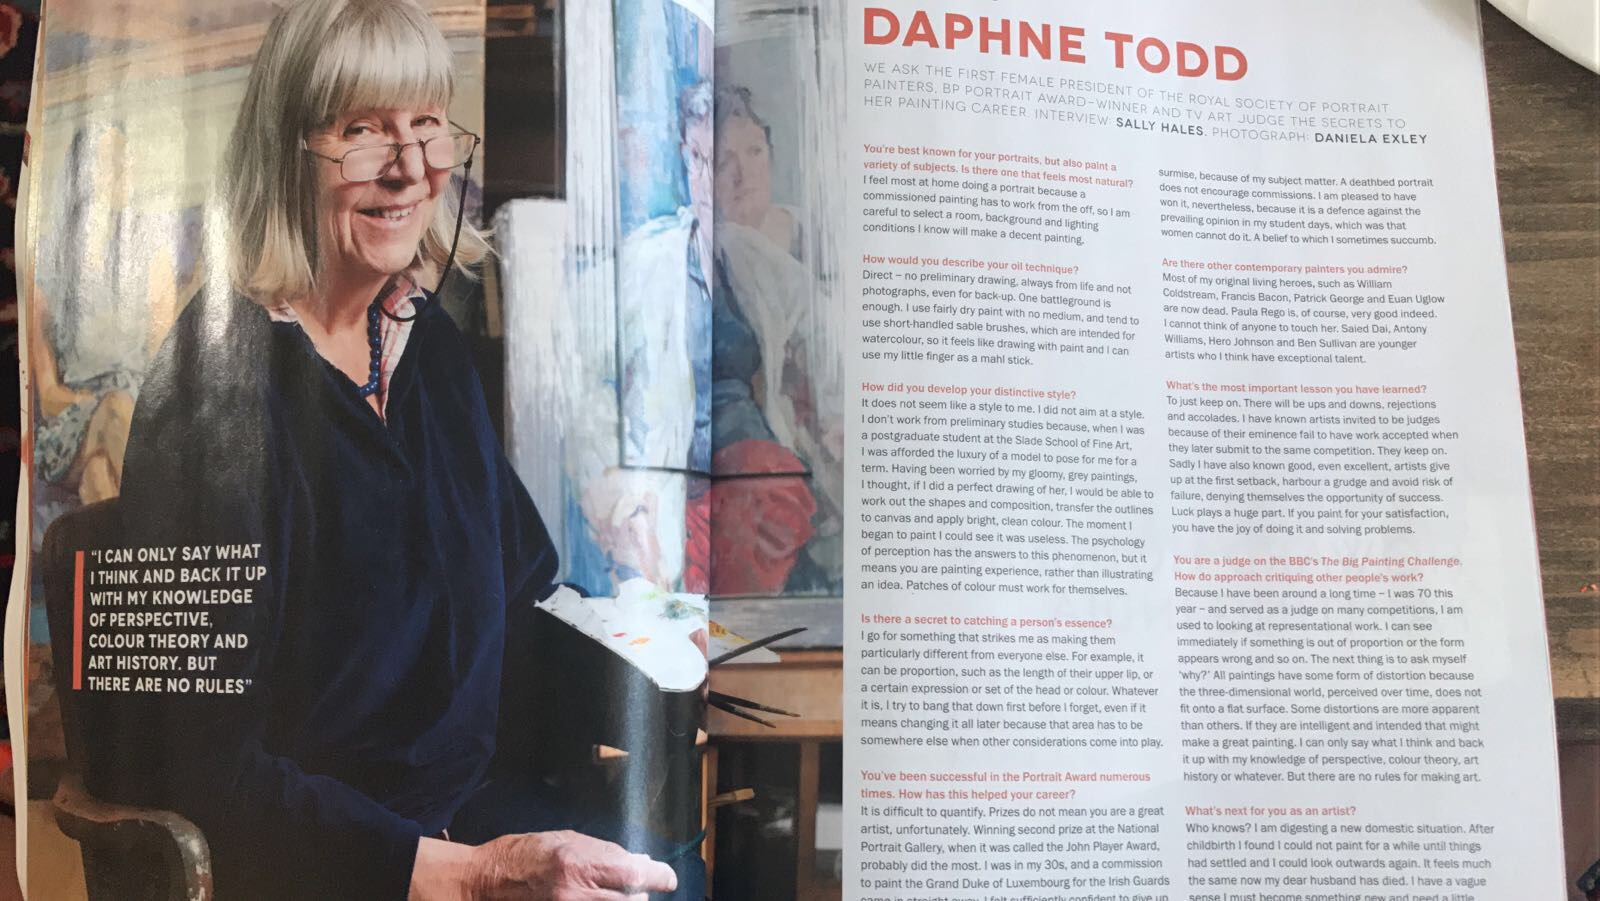 Interview with Daphne Todd in Artists & Illustrators magazine. By Sally Hales